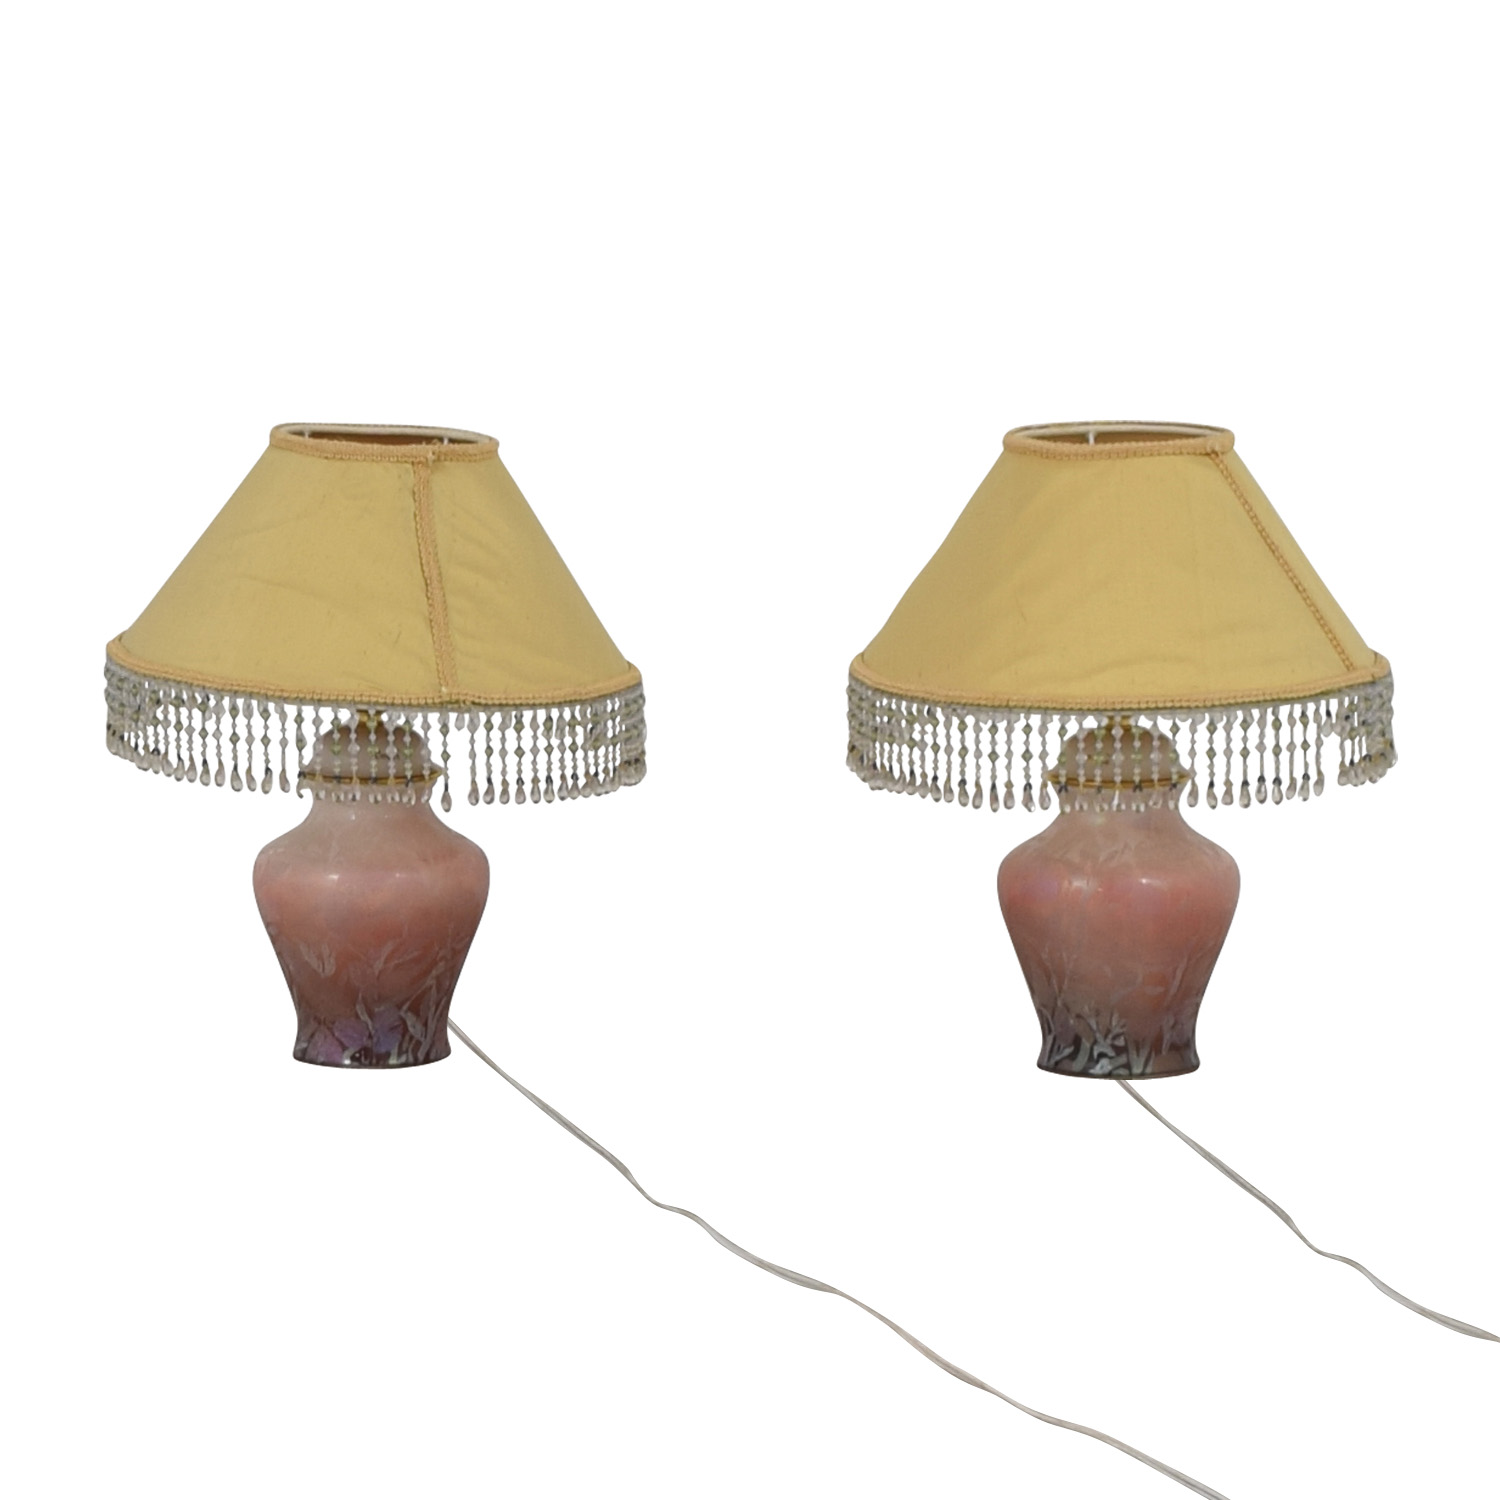 glass lamps lamp lighting old vintage yellow swag stained pin with